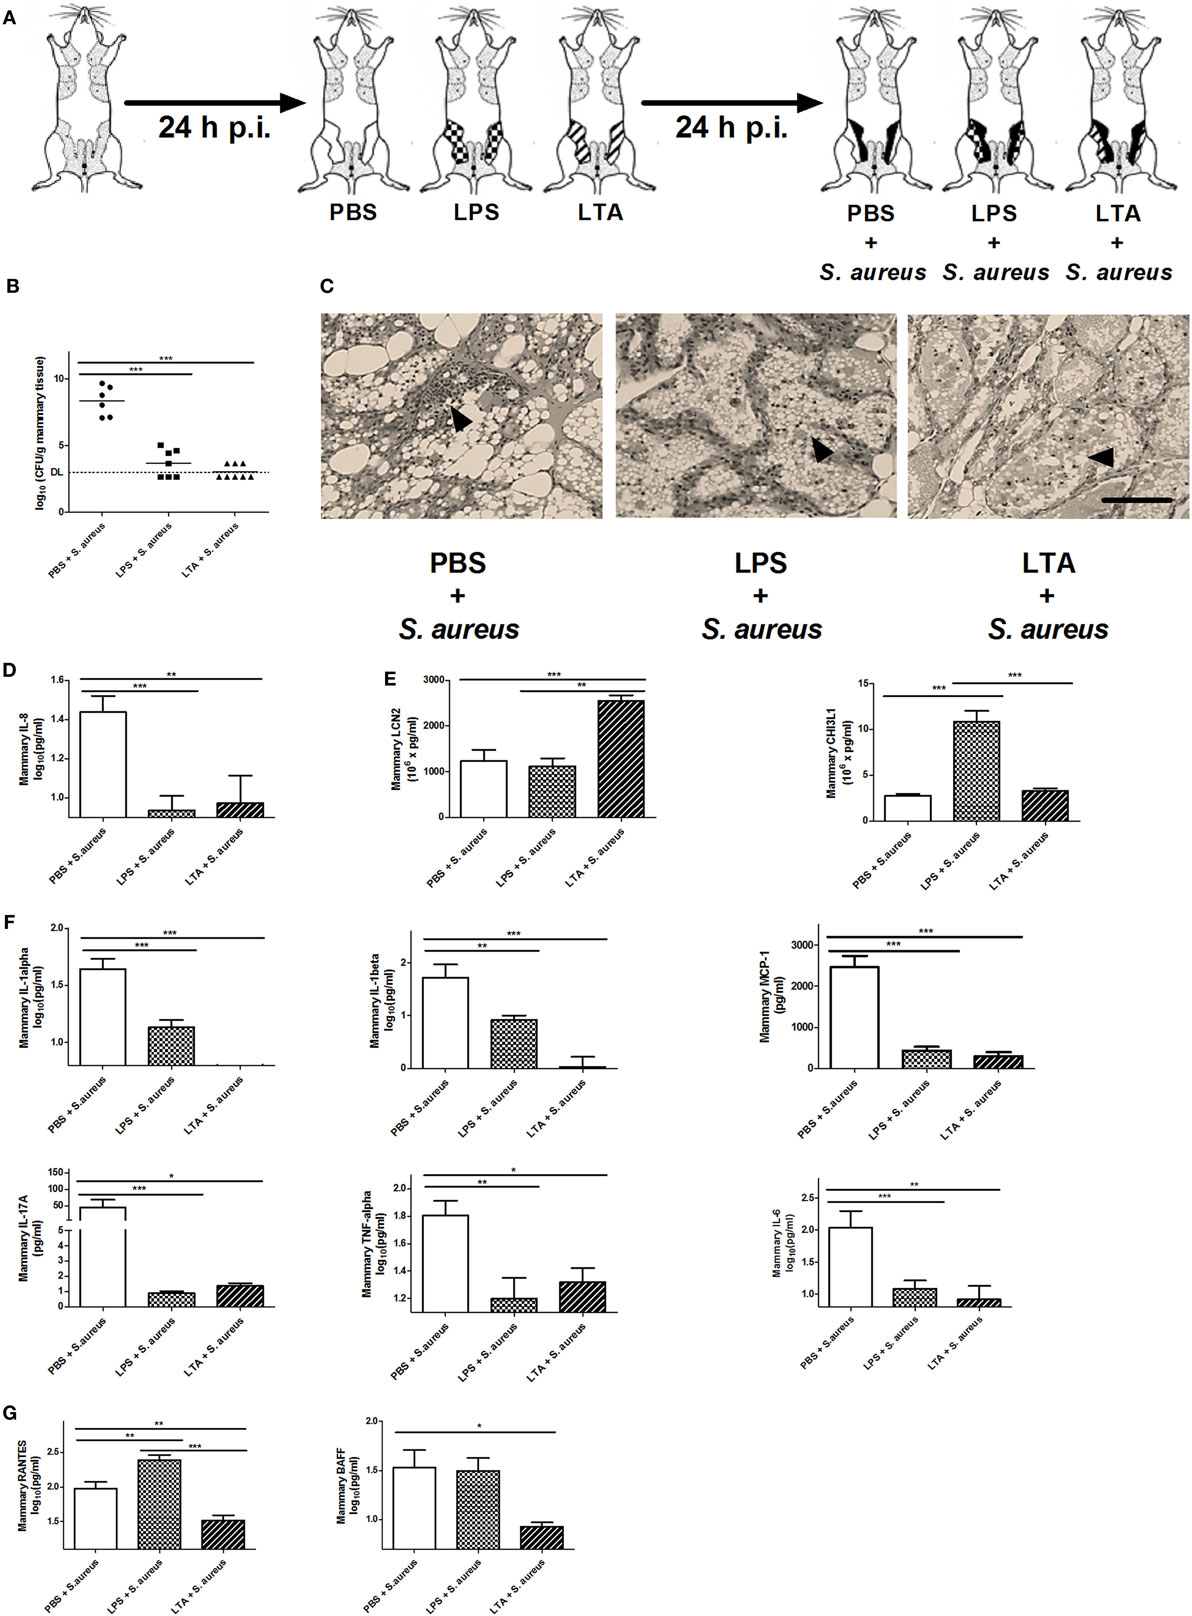 Frontiers | Preconditioning with Lipopolysaccharide or Lipoteichoic ...